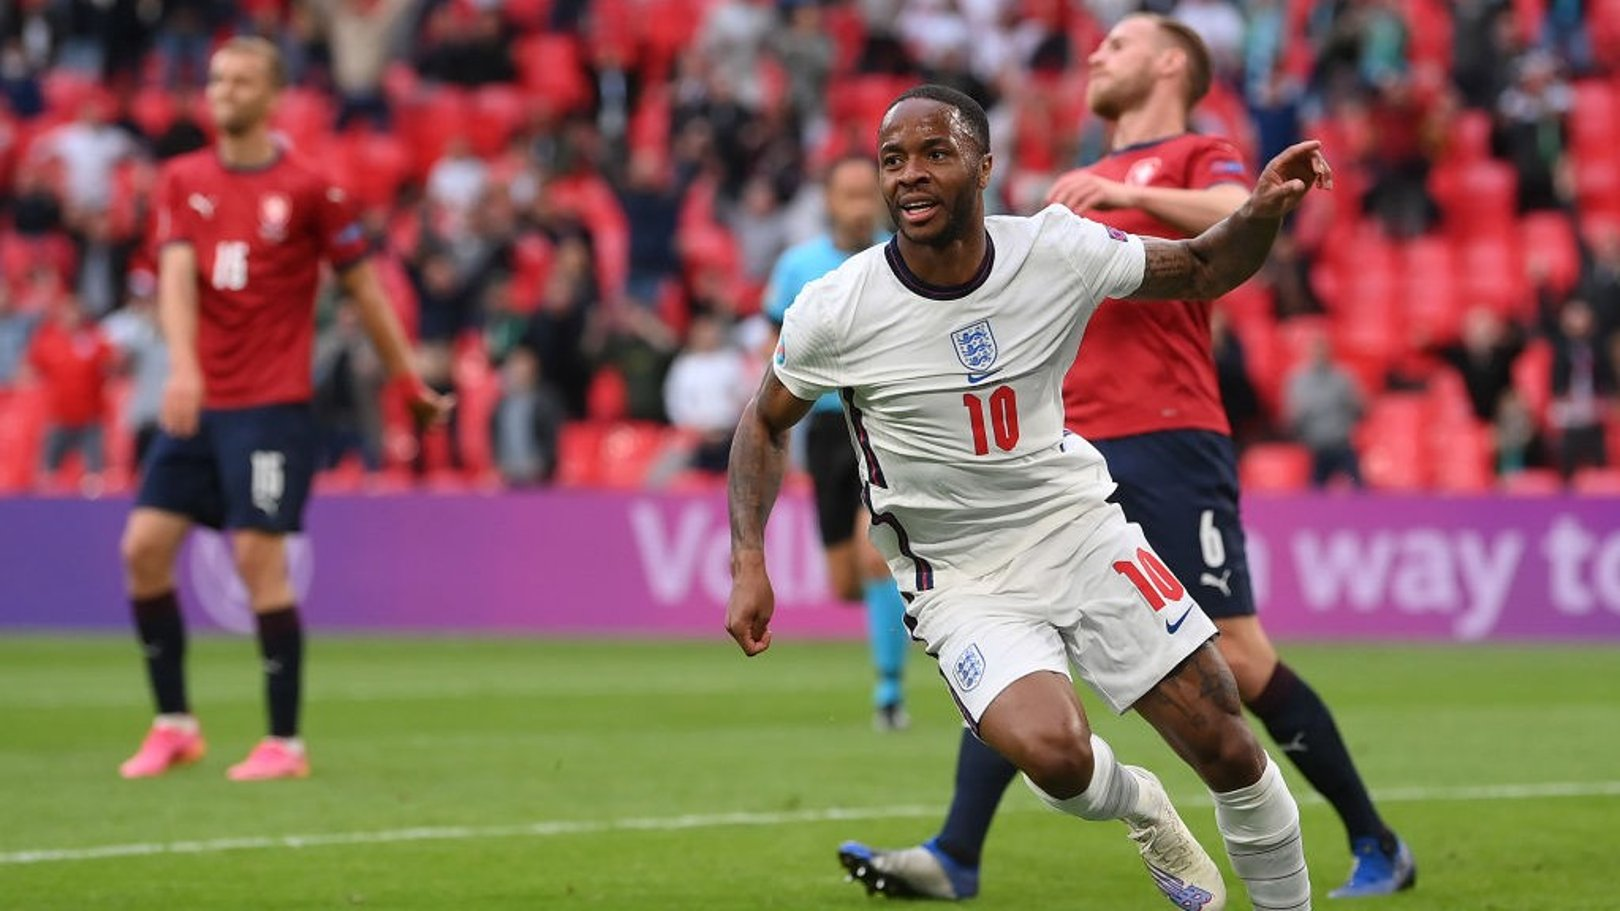 Raheem Sterling: Group win important for England